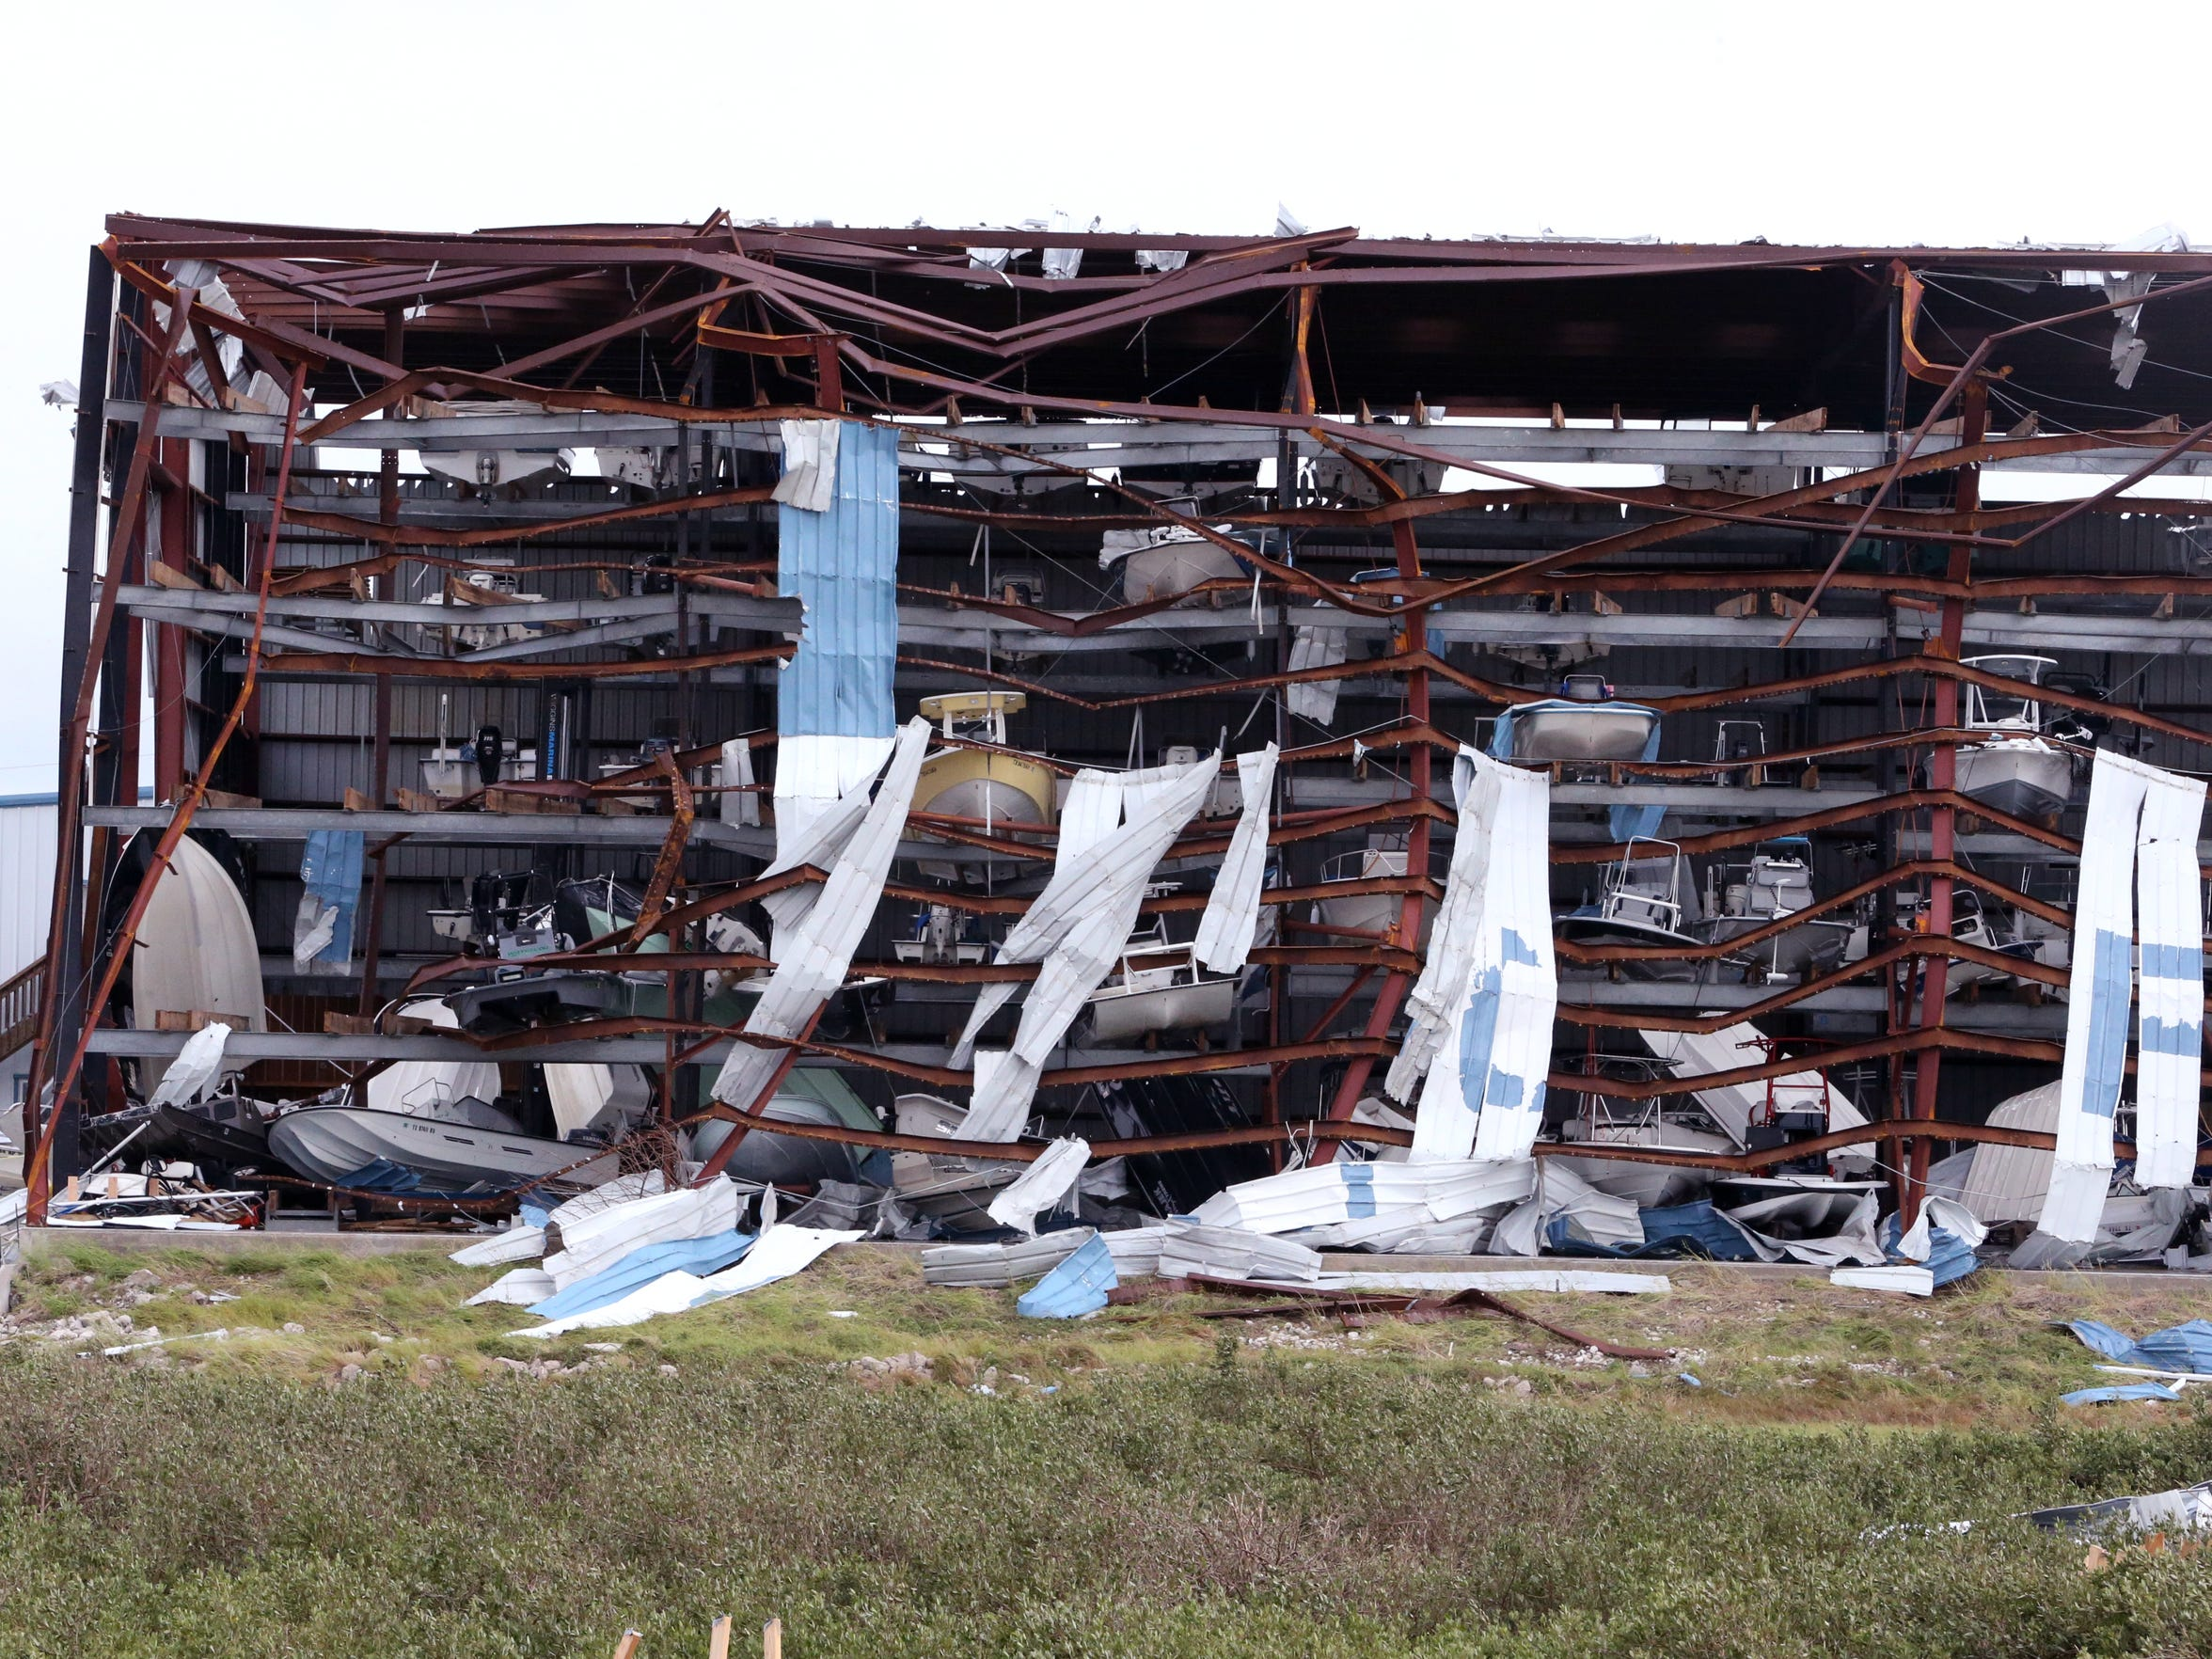 This boat storage facility in Cove Harbor in Rockport,